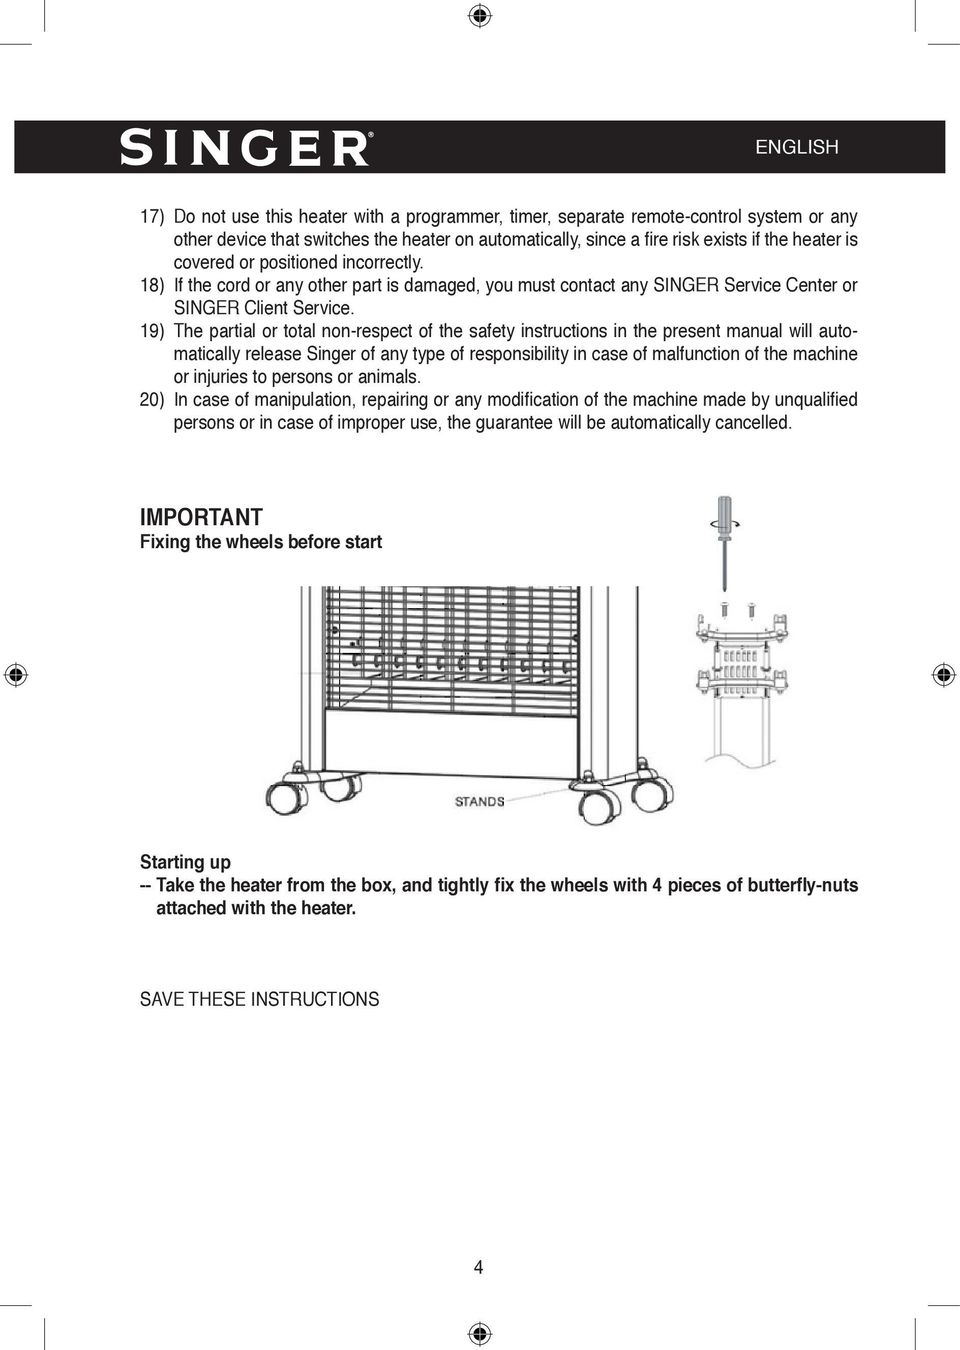 19) The partial or total non-respect of the safety instructions in the present manual will automatically release Singer of any type of responsibility in case of malfunction of the machine or injuries